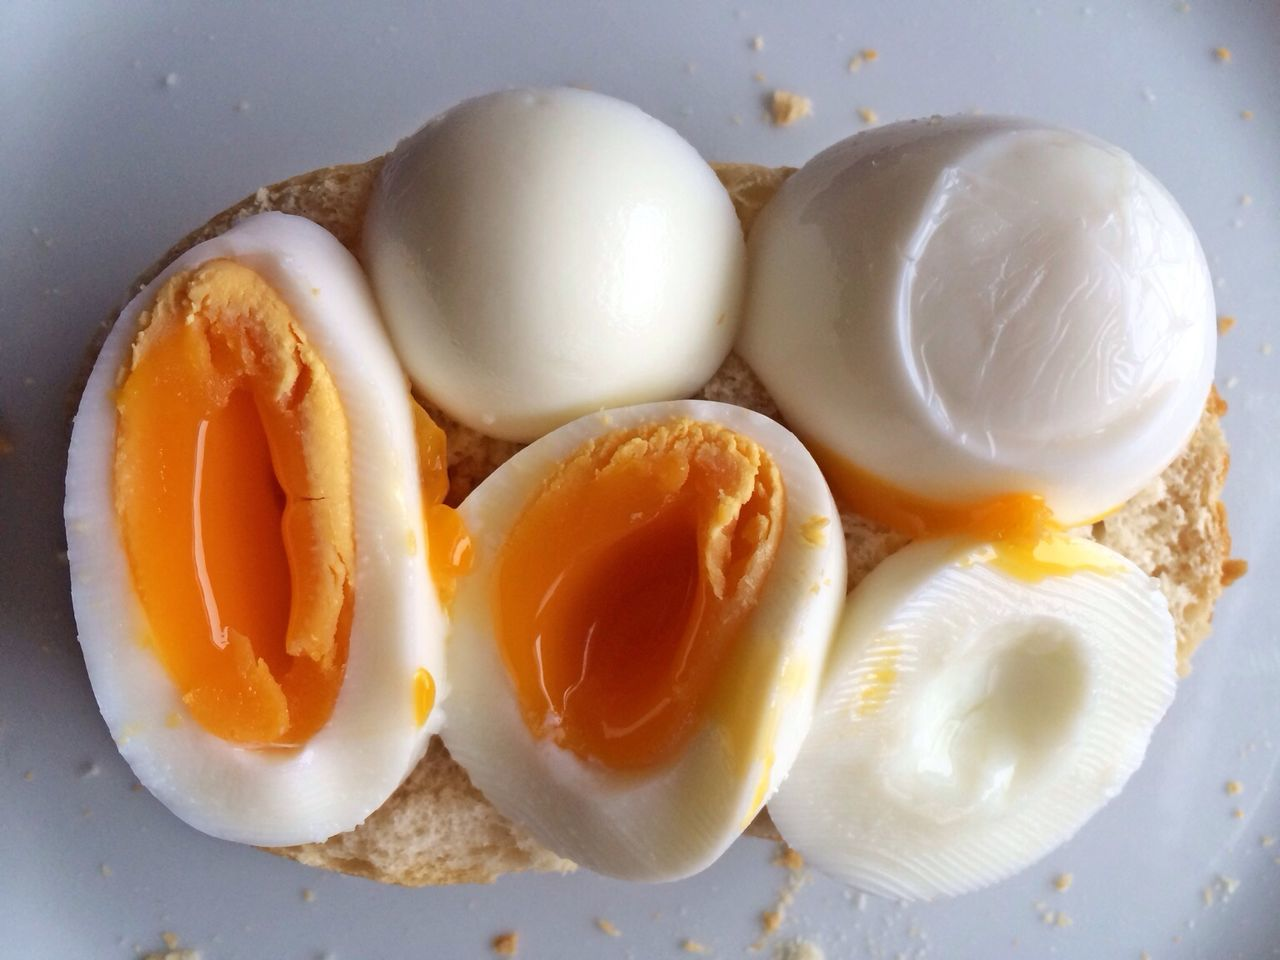 Close-up of boiled eggs